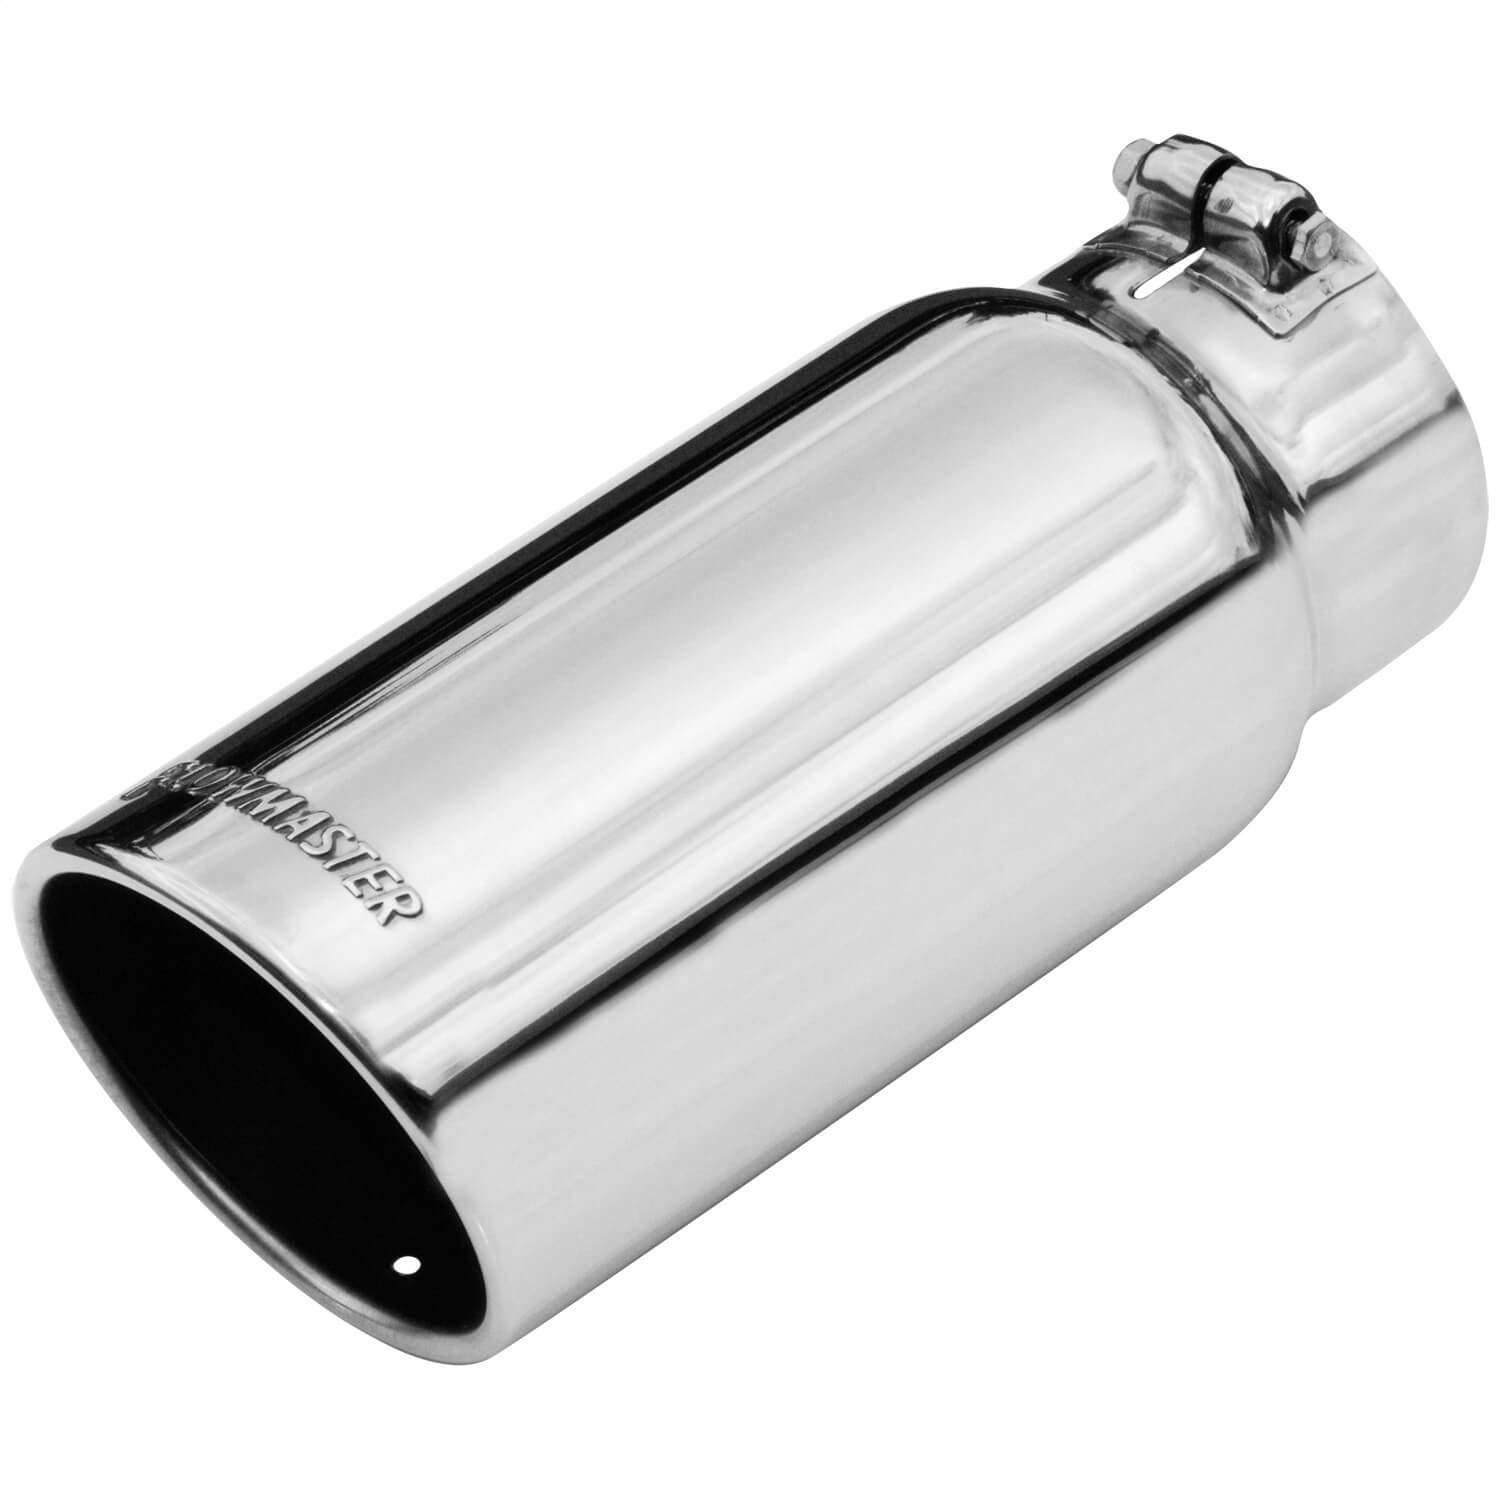 Flowmaster 15368 Stainless Steel Exhaust Tip